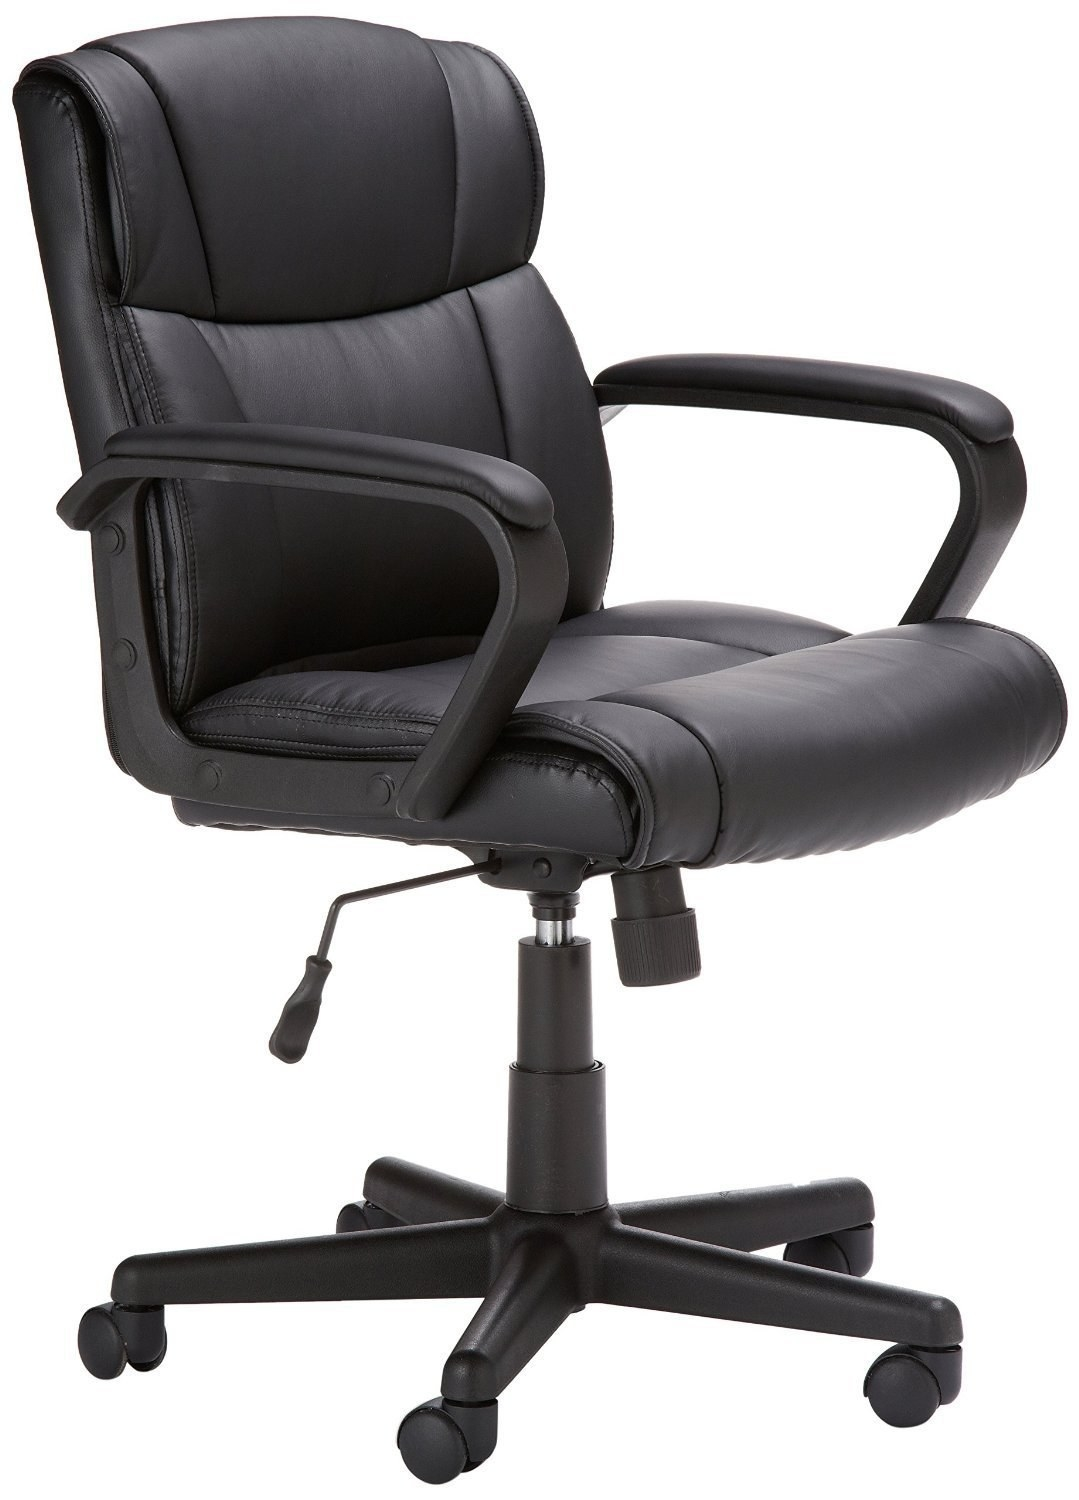 The chair with wheels, padded seat, back, and armrests in black